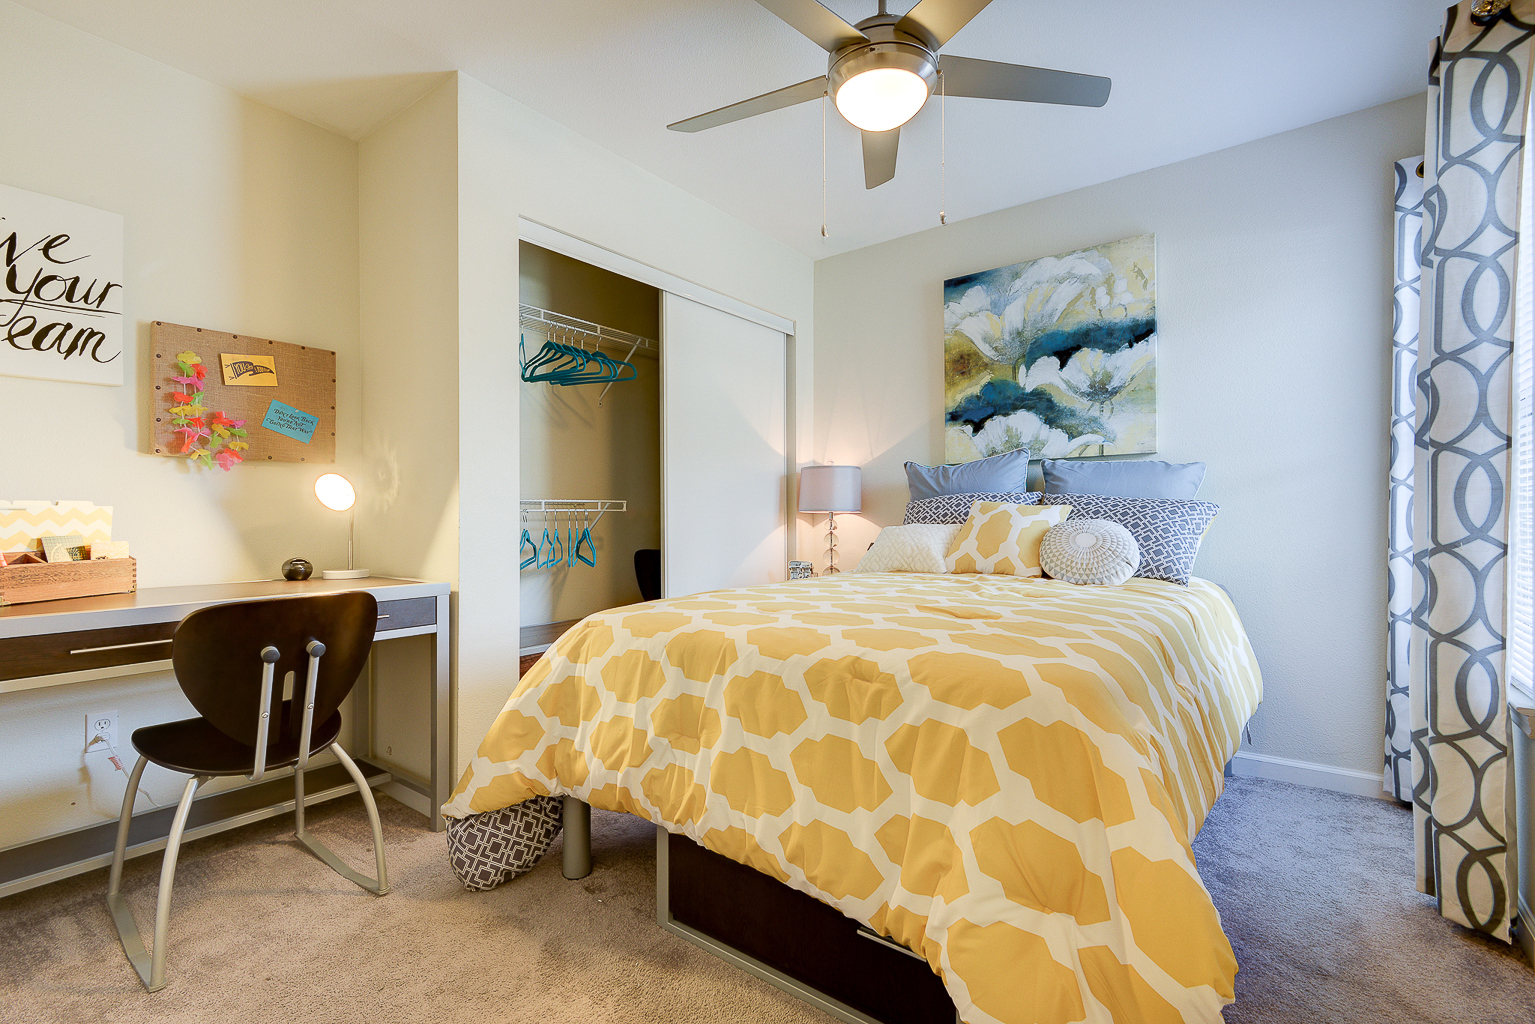 Interior of apartment bedroom with bed, closet, desk and ceiling fan